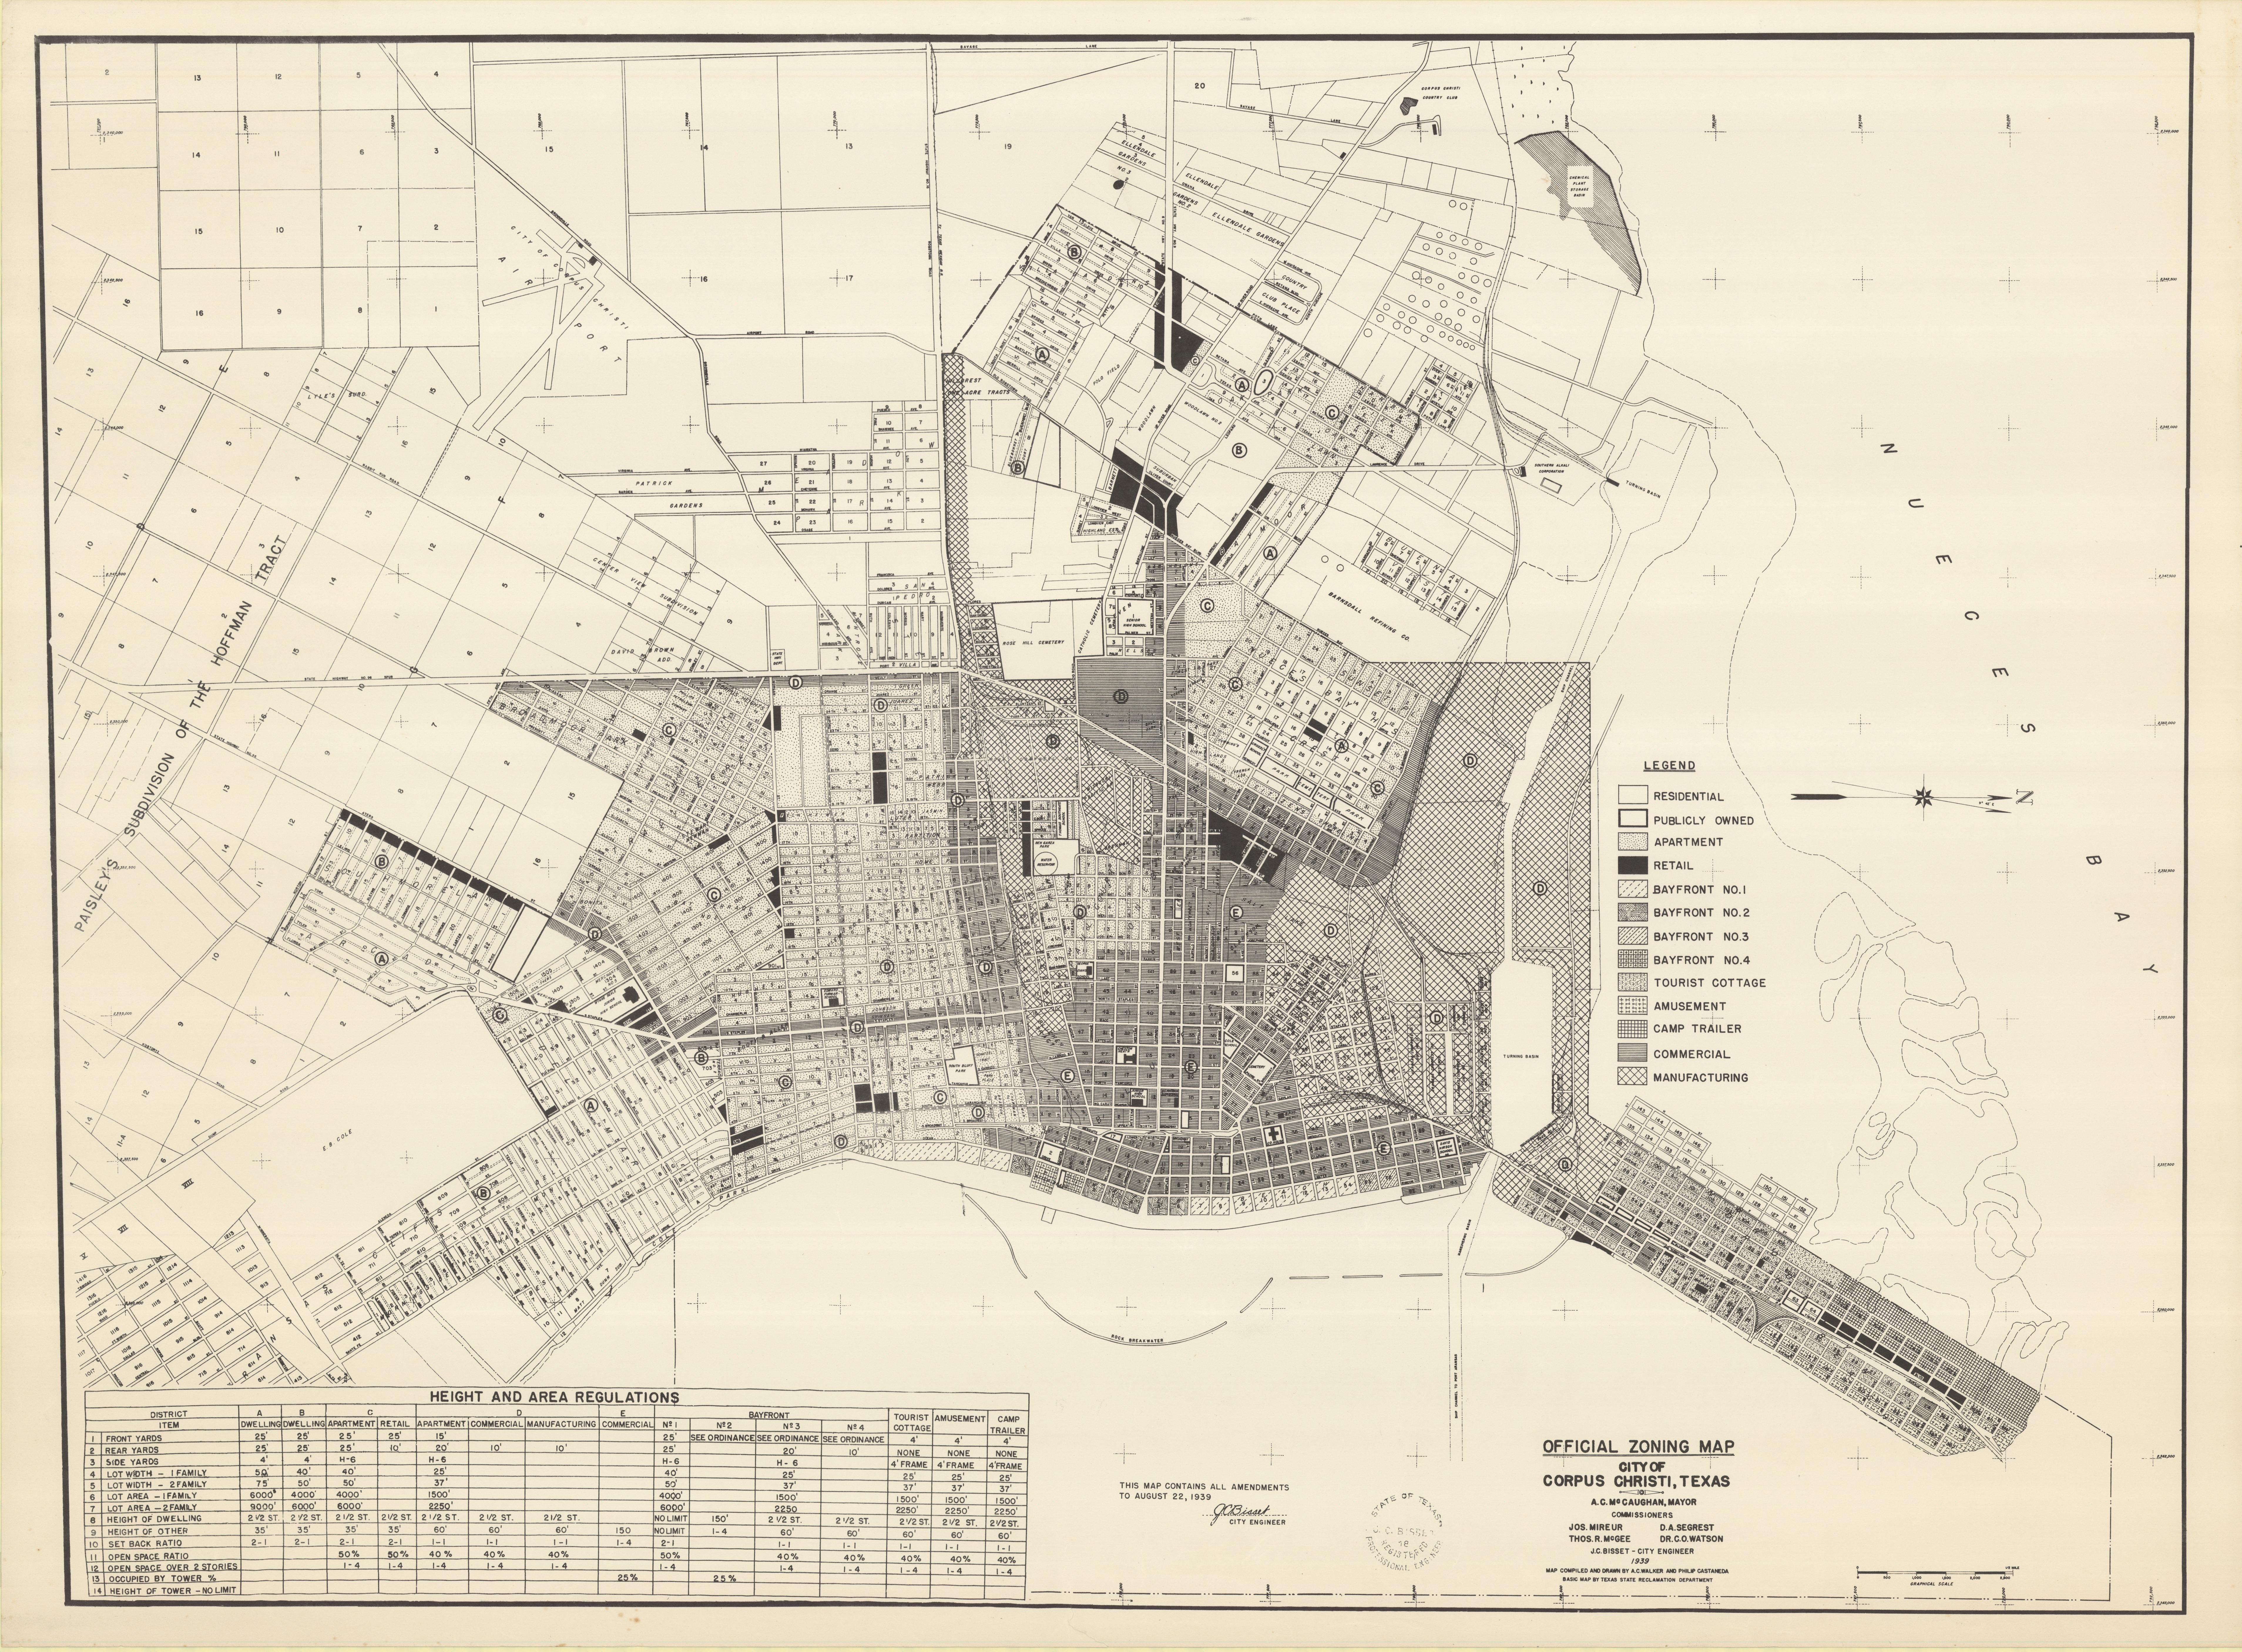 Official Zoning Map: City of Corpus Christi, Texas on